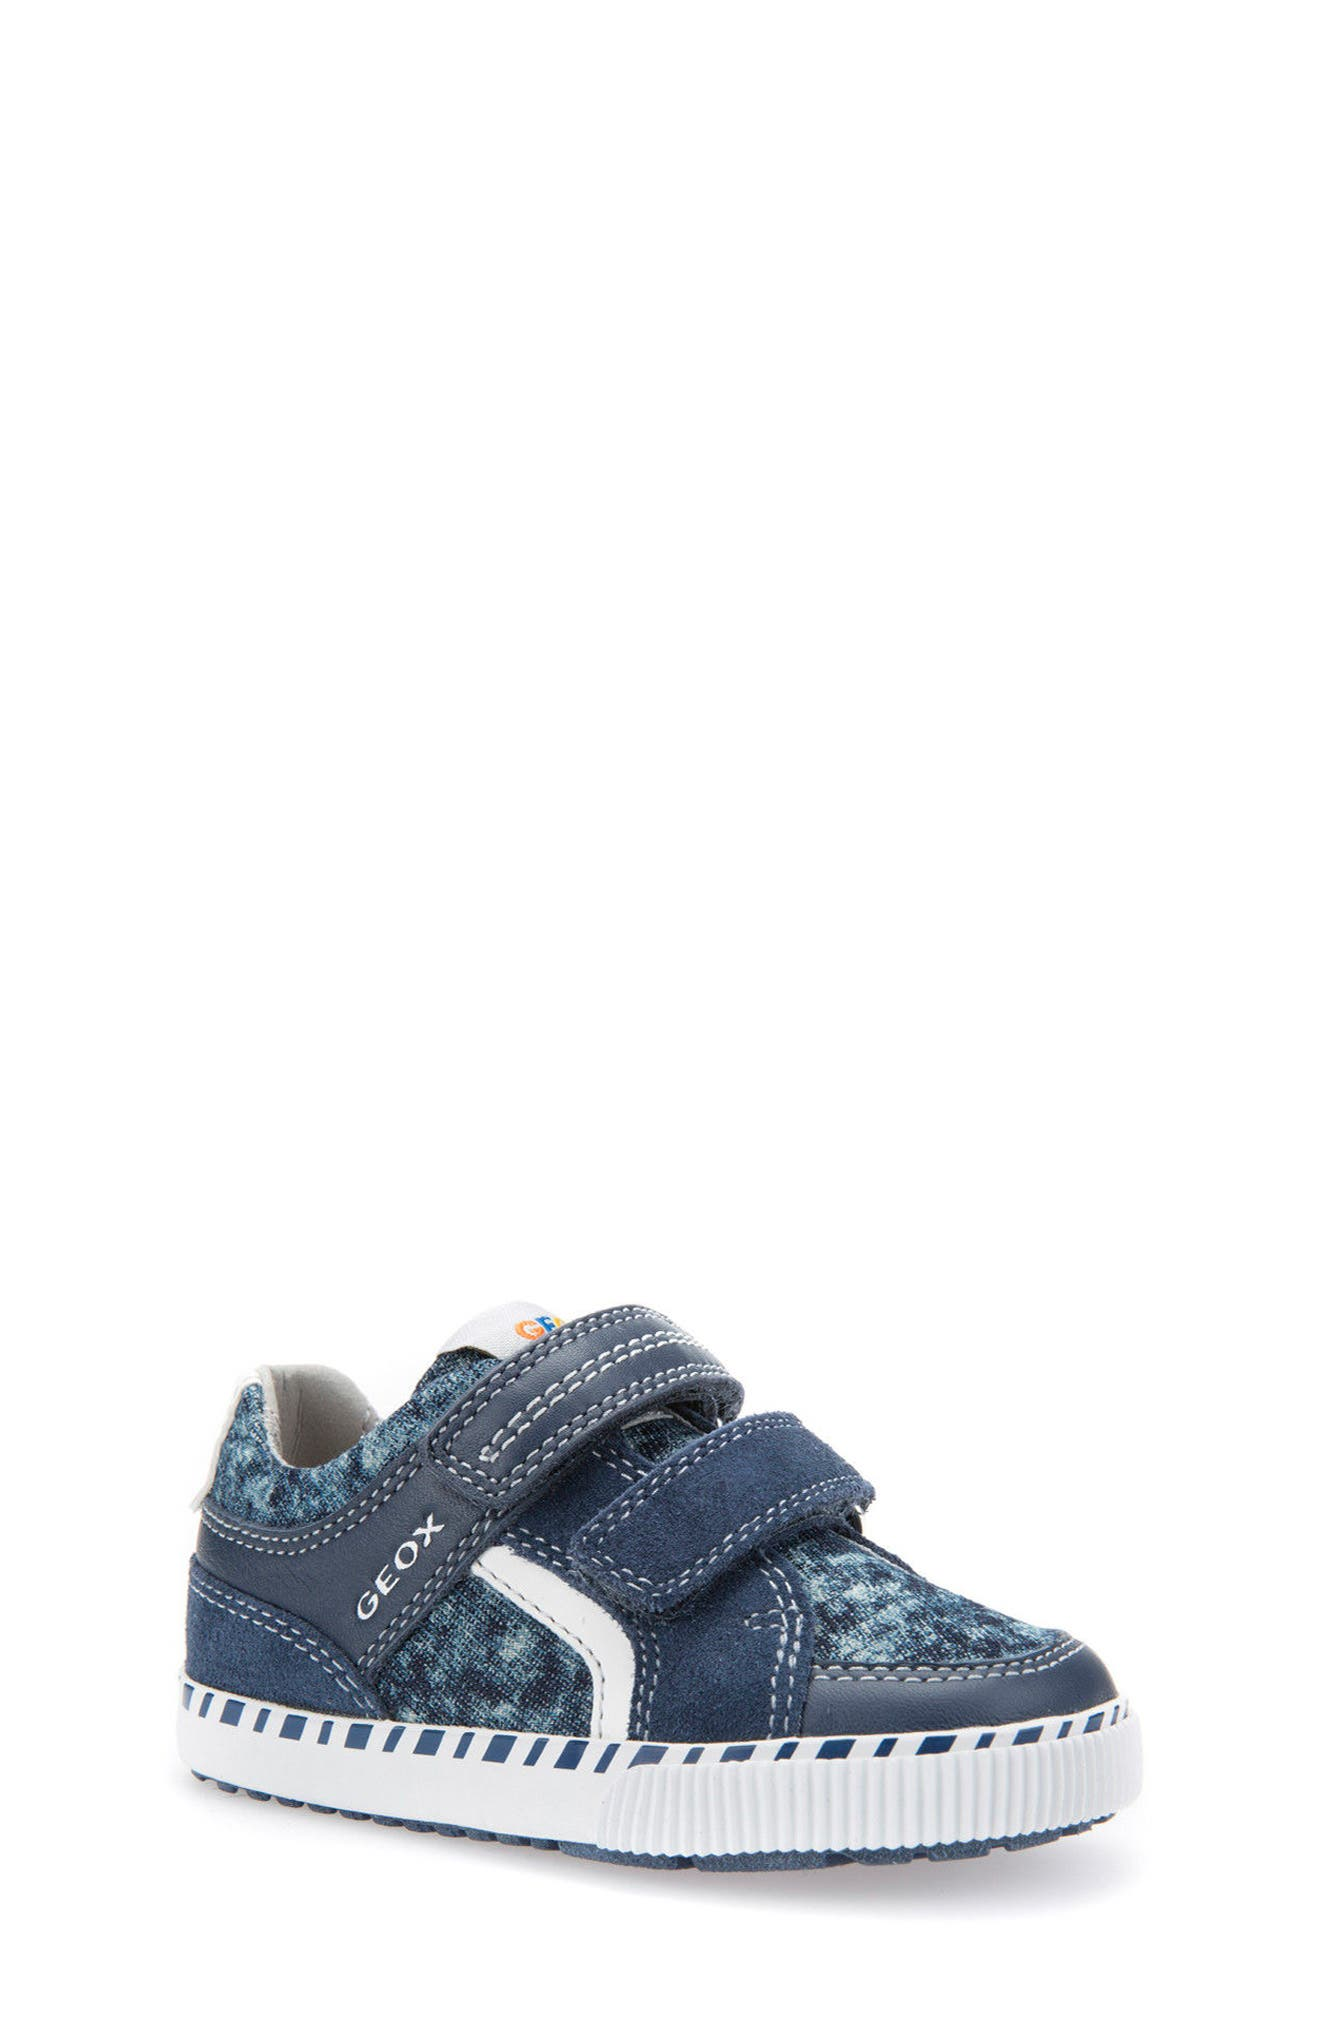 Kilwi Knit Sneaker,                         Main,                         color, NAVY/ WHITE